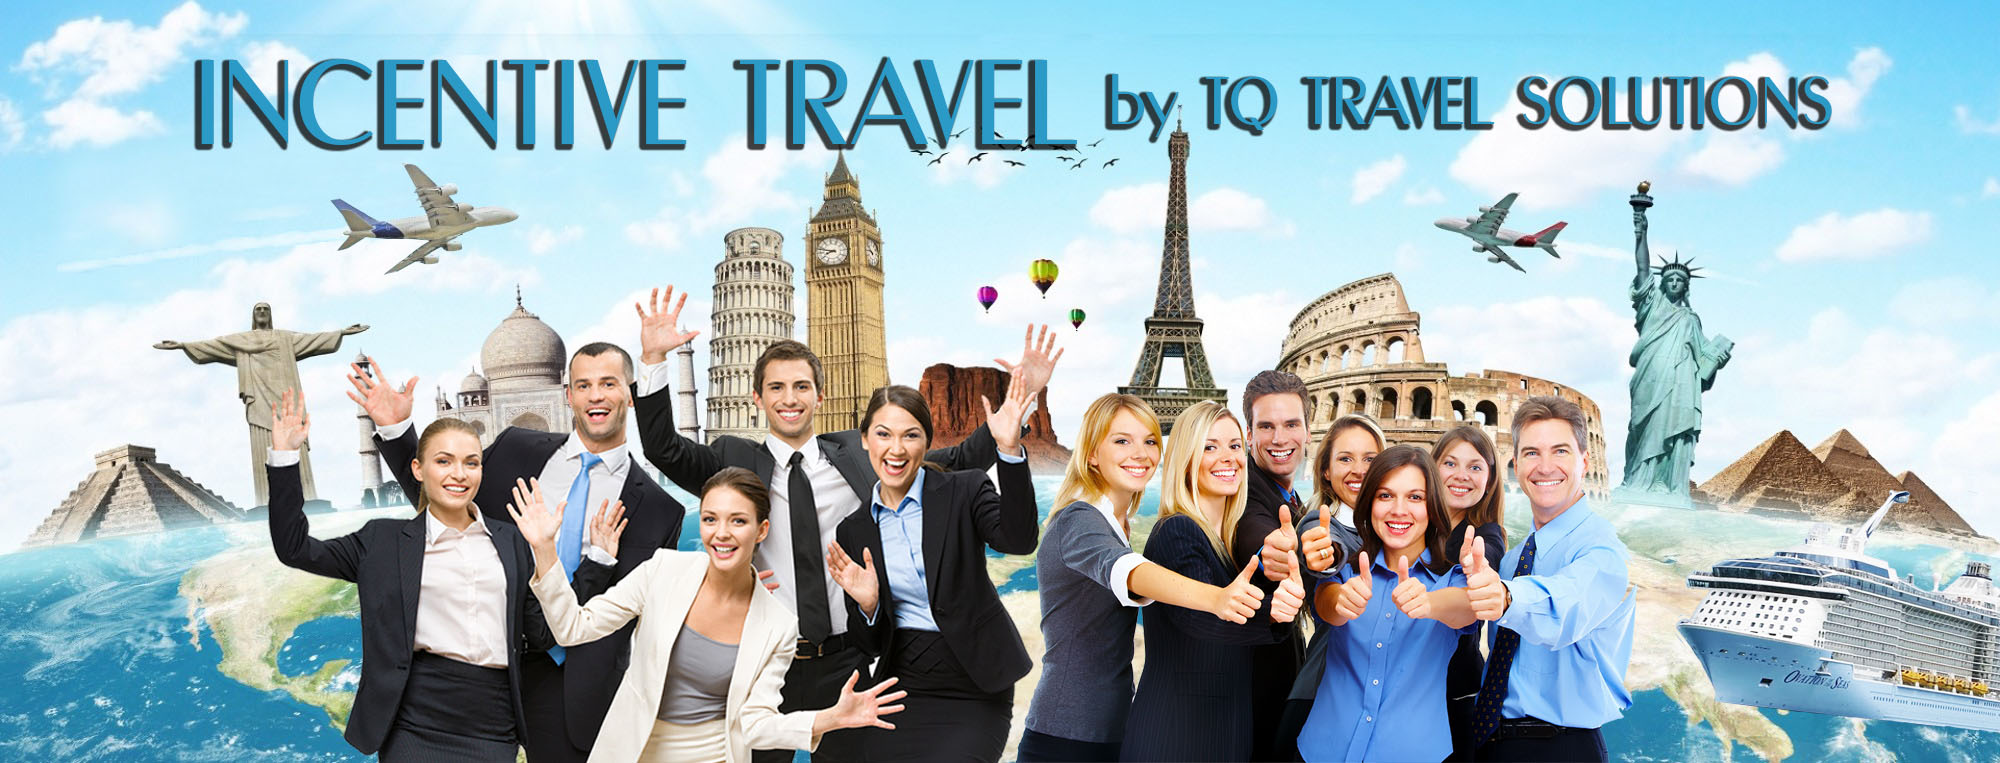 Tours And Travels Company In Usa